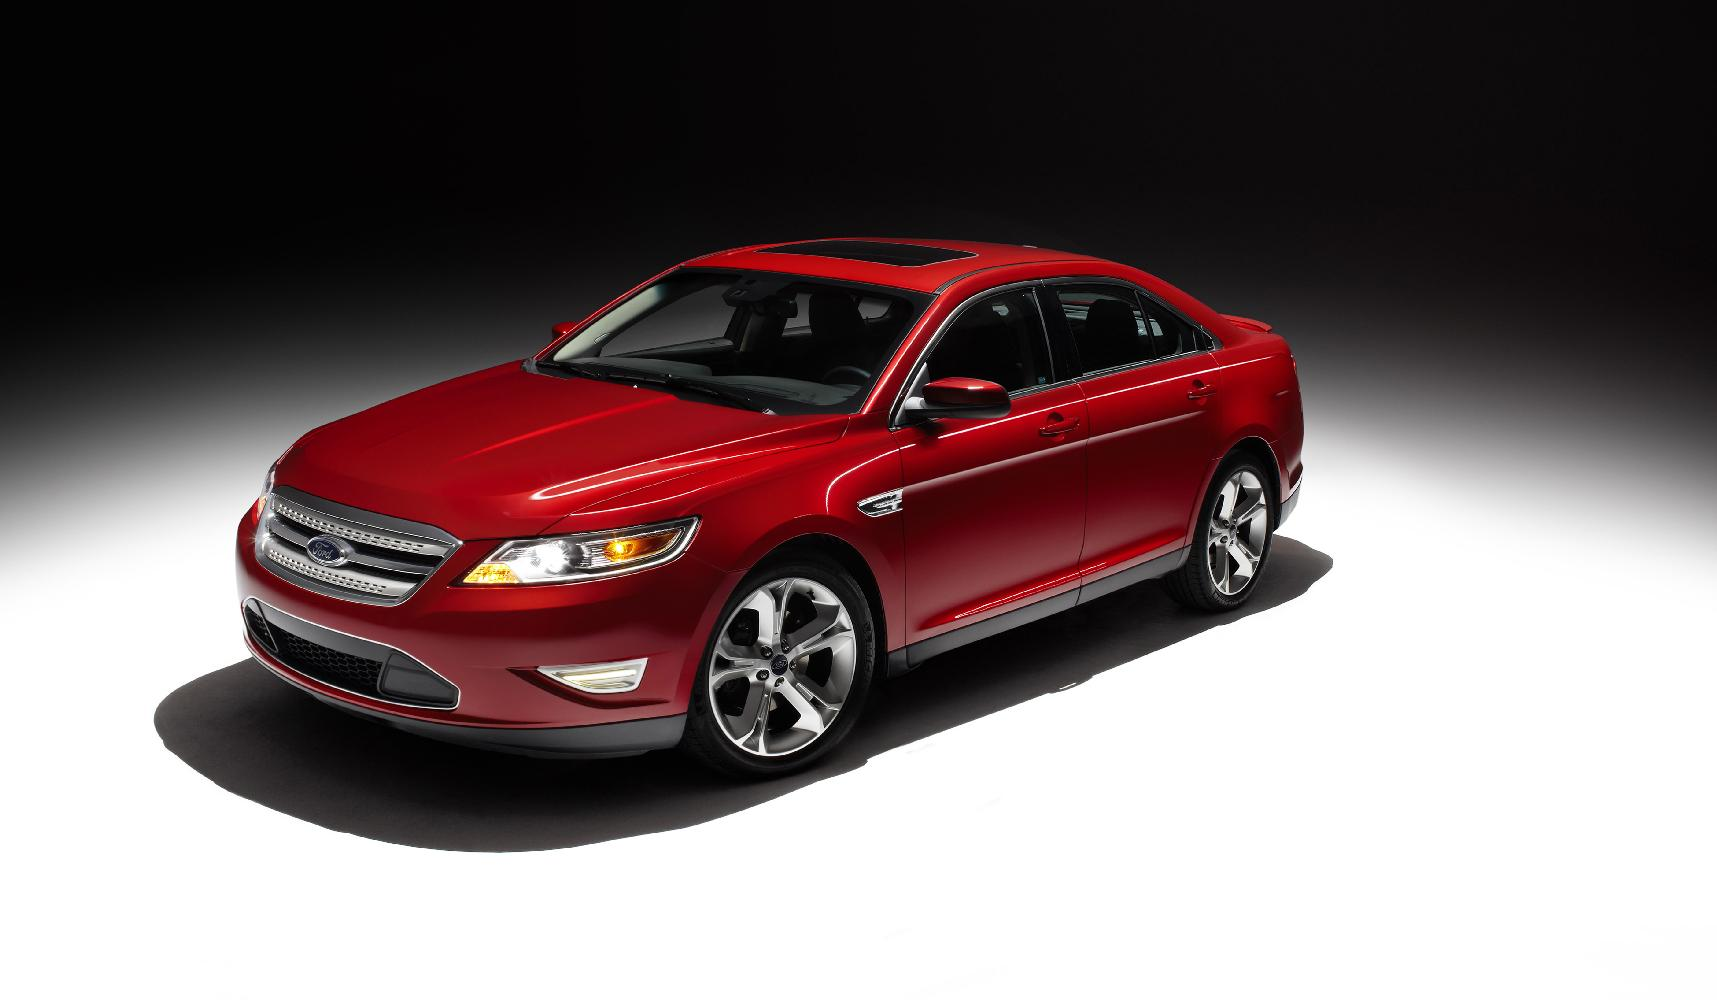 Ford fits ecoboost engine to 2010 taurus sho aka hot rod